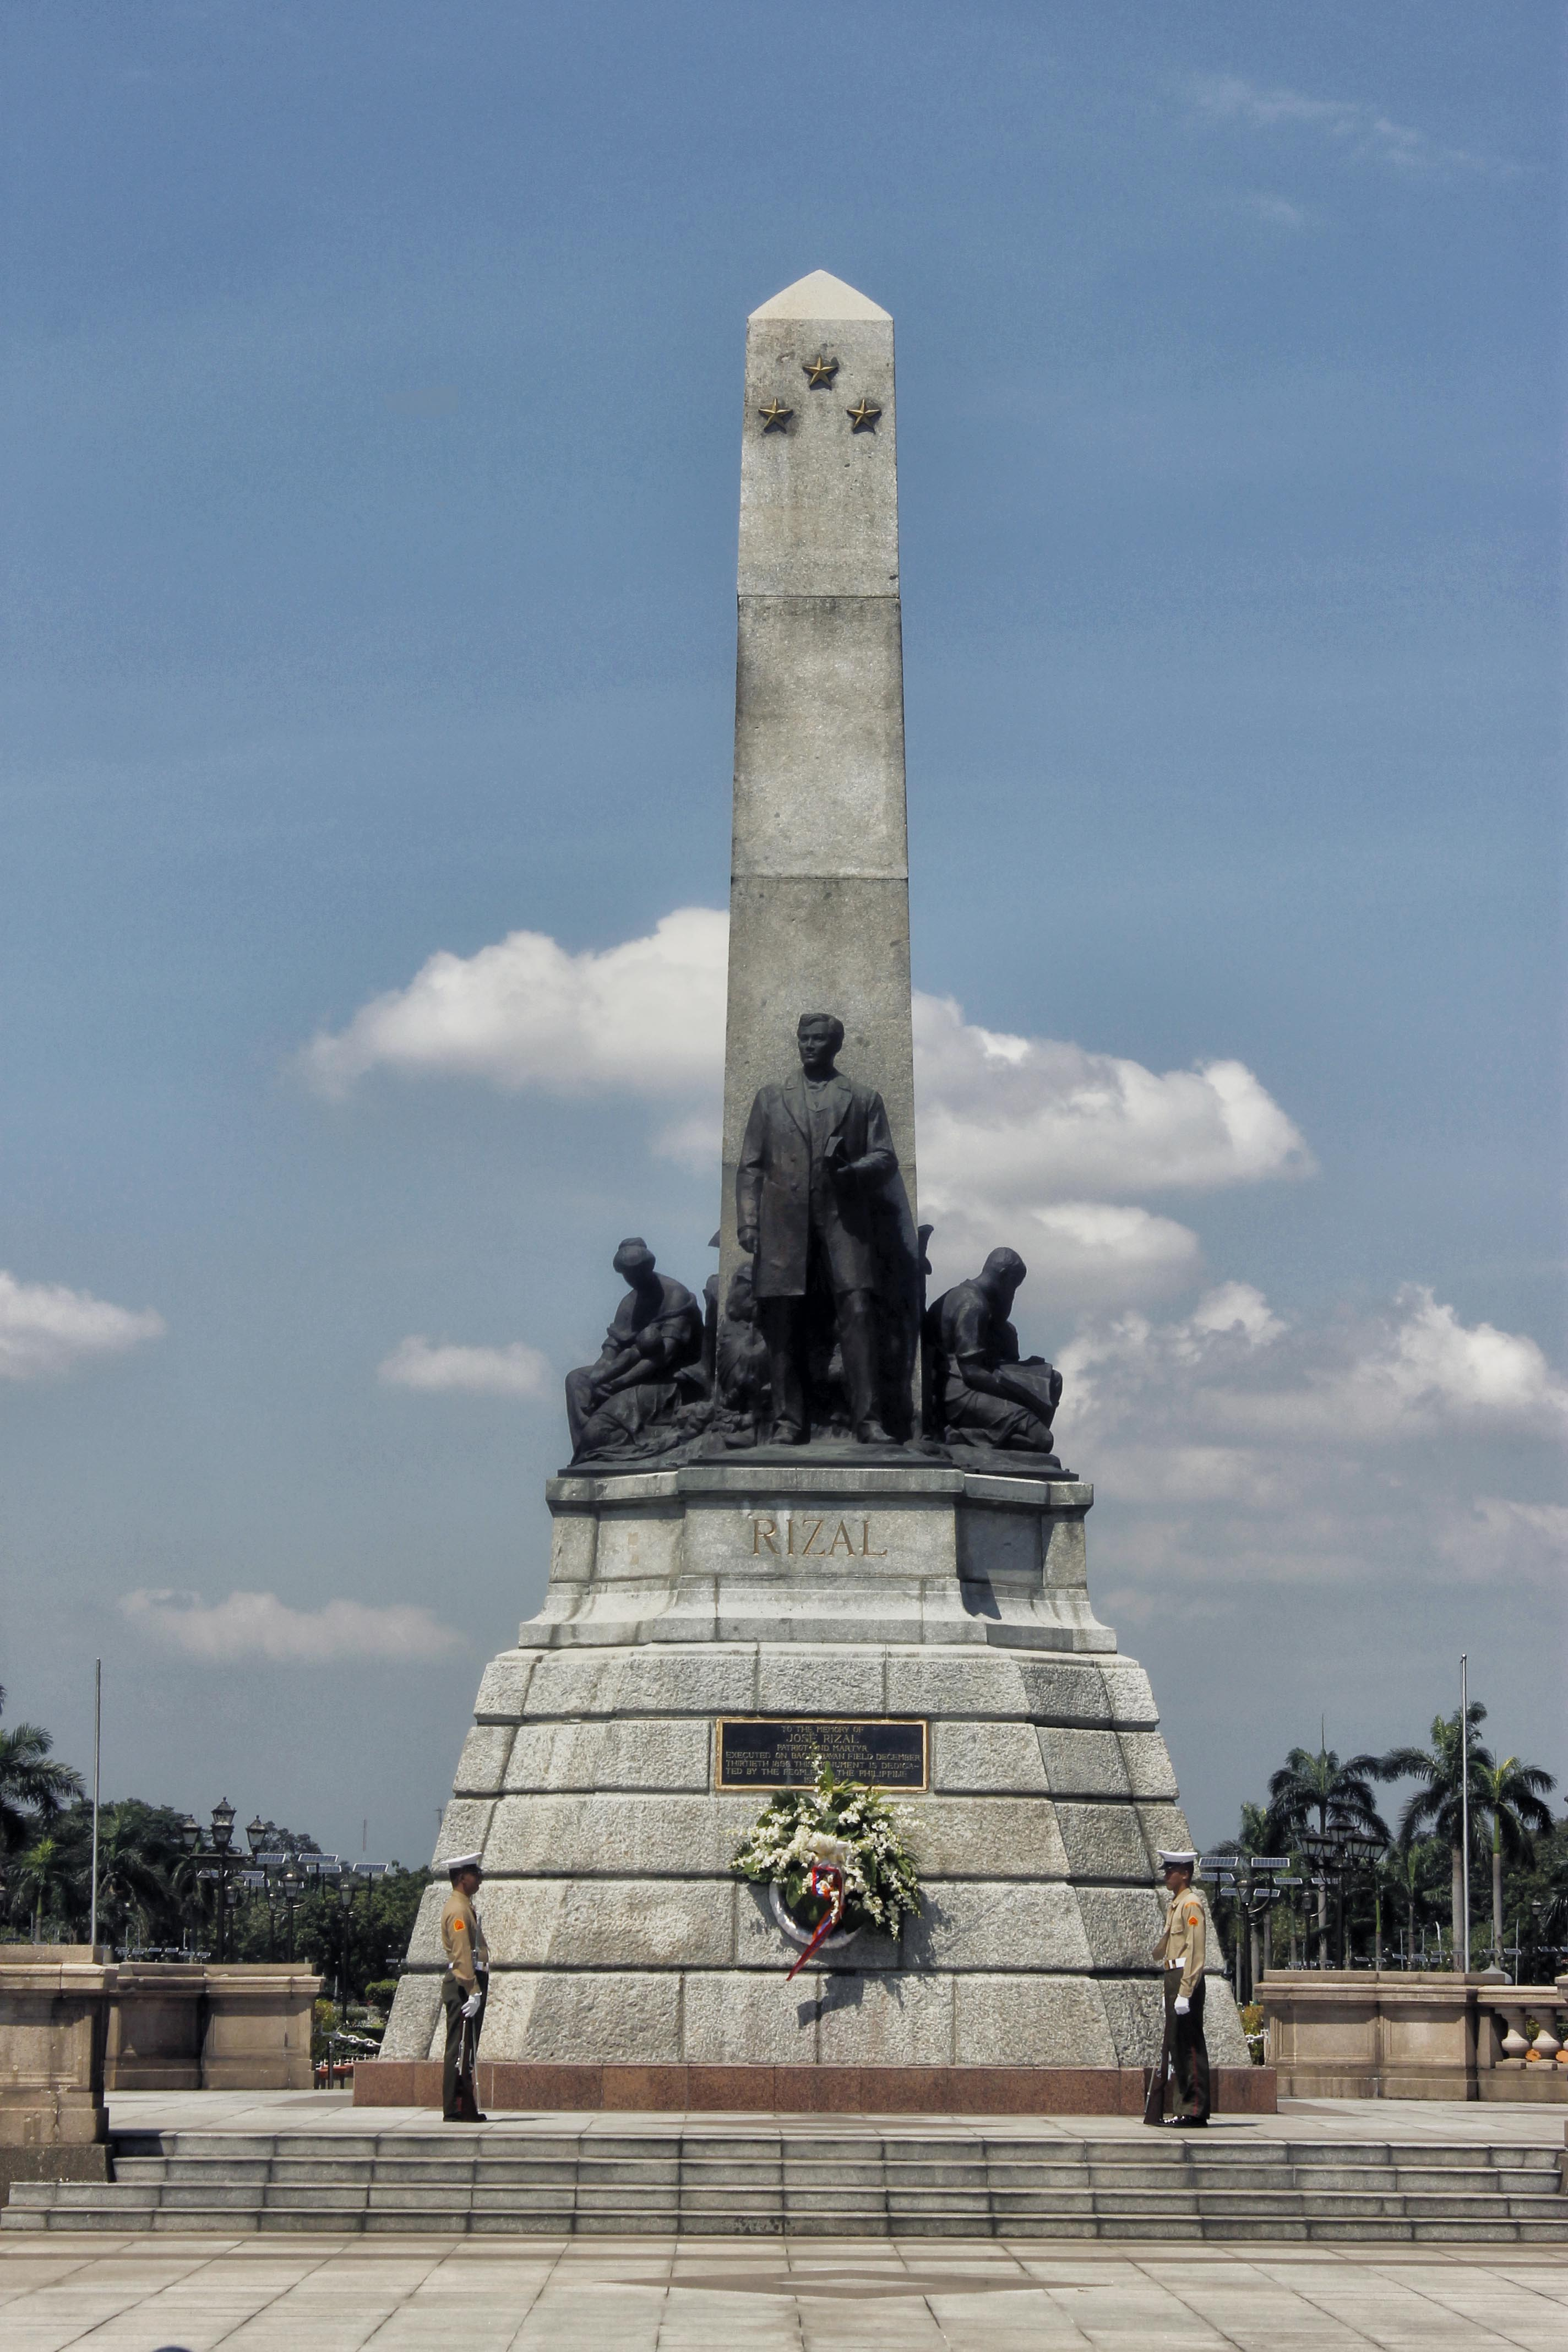 GLORY DAYS. The Rizal Monument is perhaps Manilau00e2u0080u0099s famous landmark, photographed here before the rise of a photobombing building. Photo by Louie Lapat